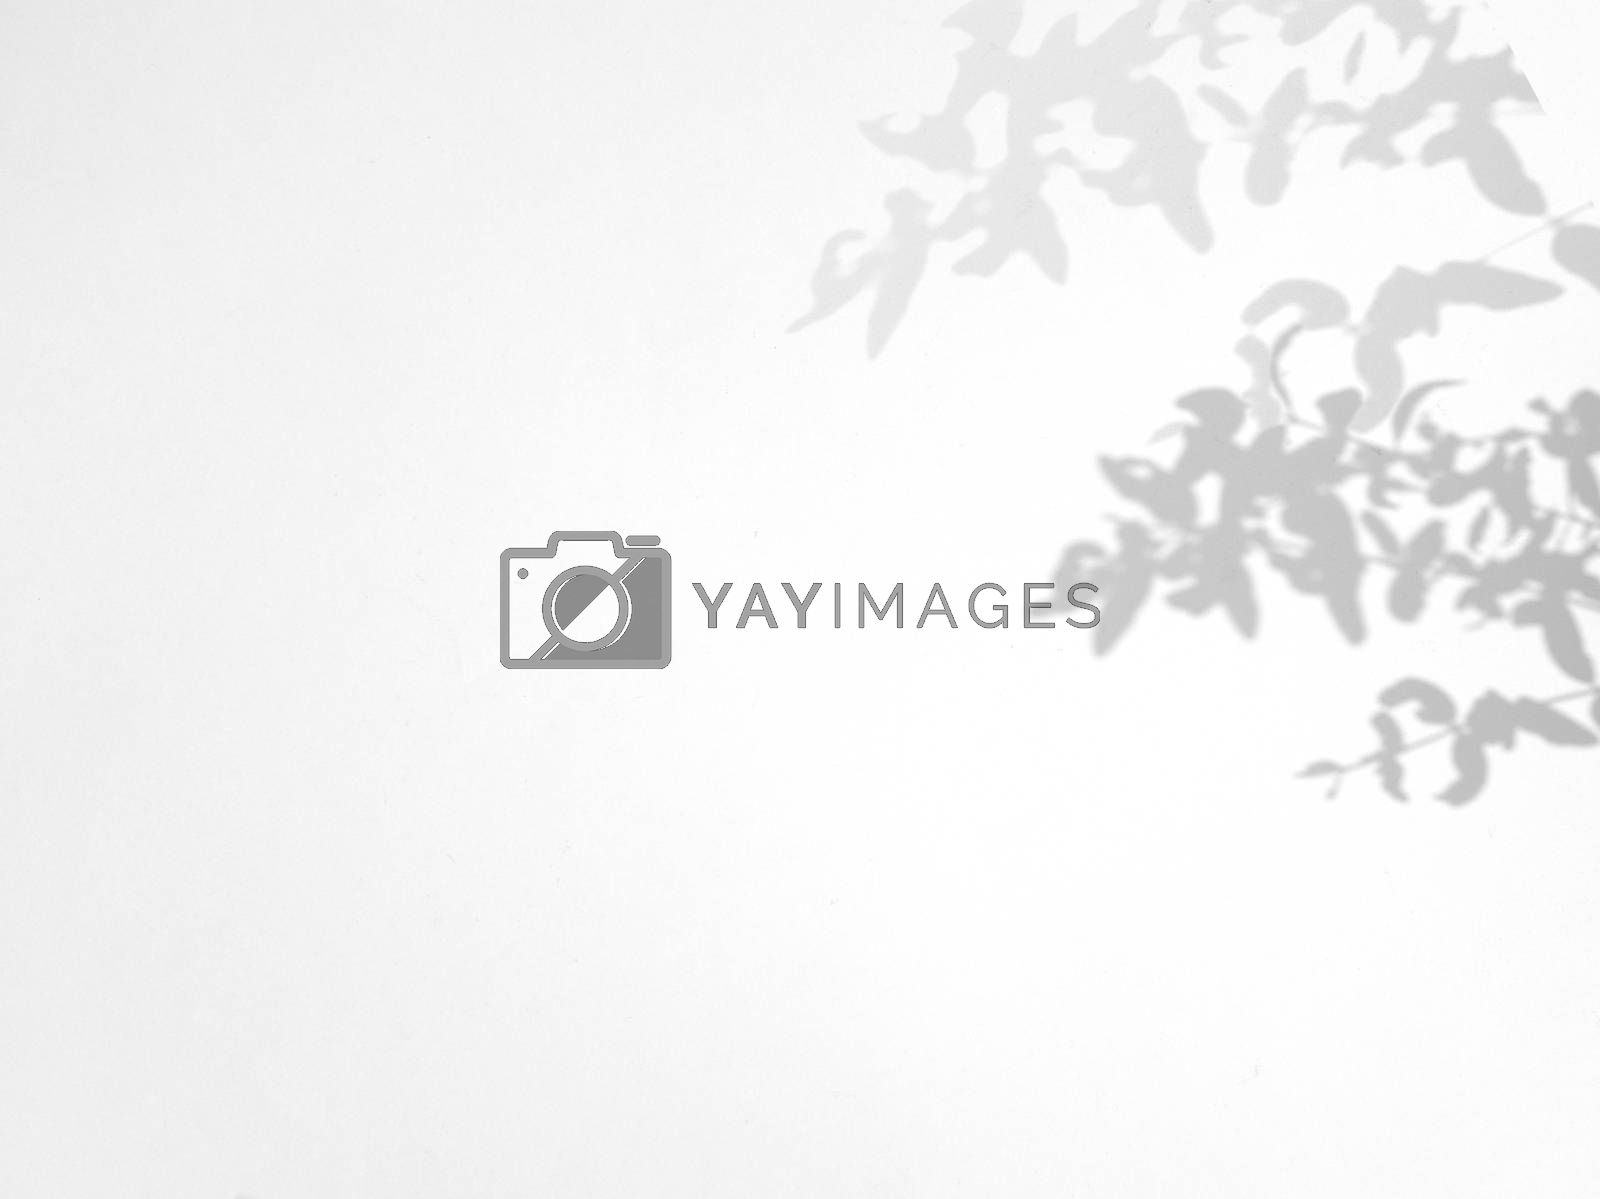 Leaves natural shadow overlay on white texture background, for overlay on product presentation, backdrop and mockup